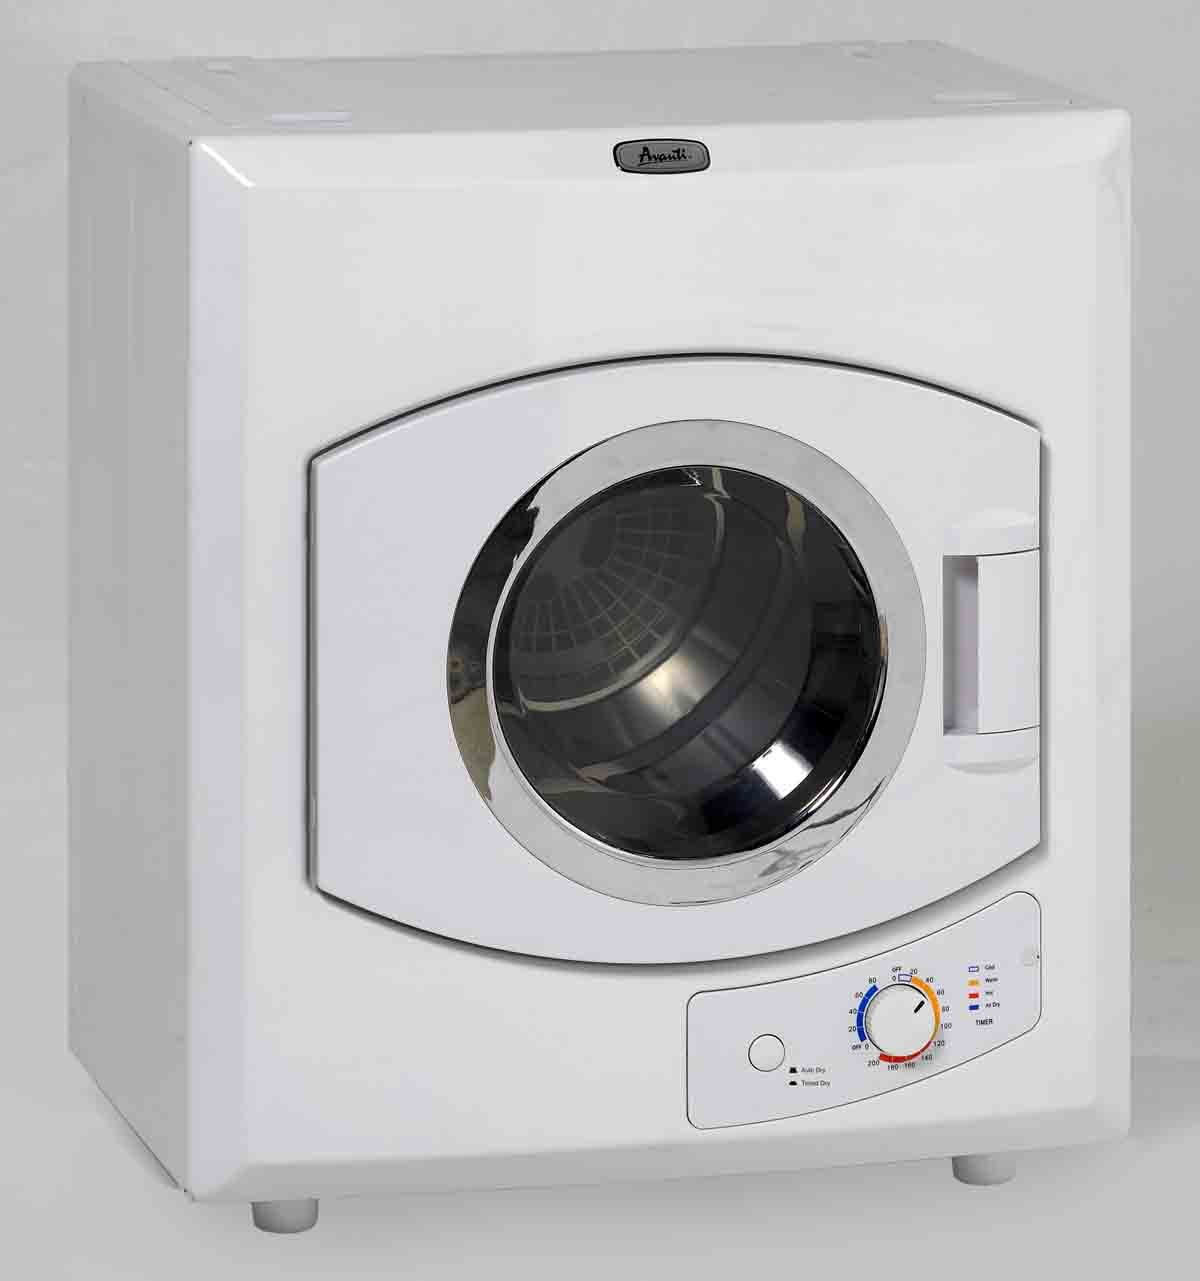 Avanti 110-Volt Automatic Portable Compact Dryer with Stainless Drum and See-Thru Window D110-1IS